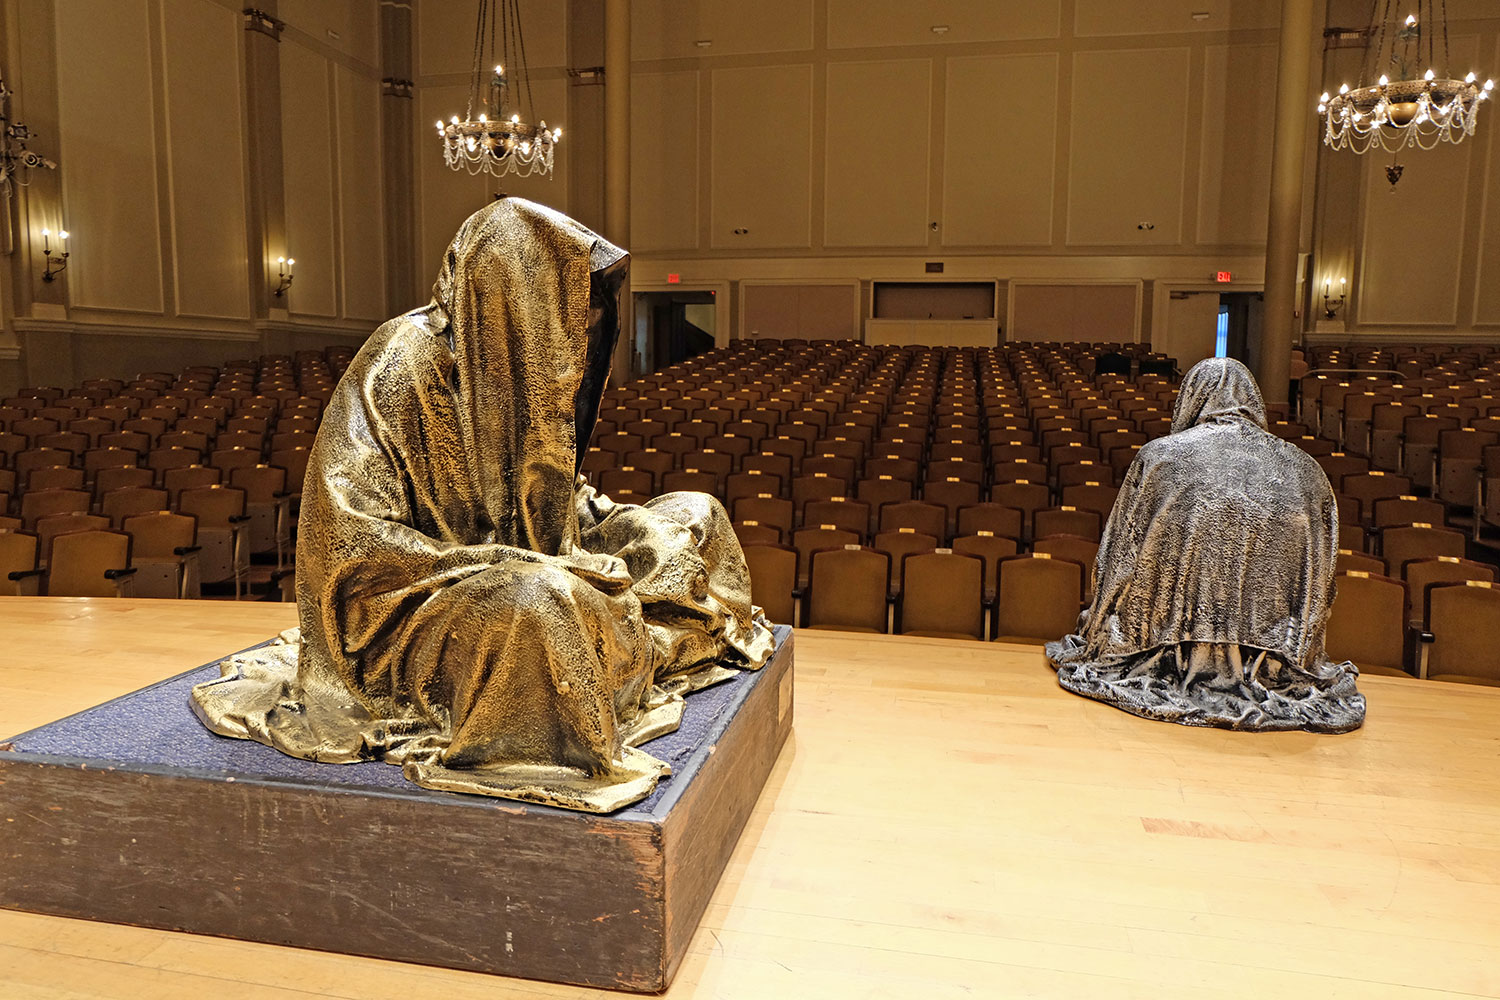 artprize-grand-rapids-mishigan-usa-contemporary-art-arts-sculpture-show-guardians-of-time-manfred-kili-kielnhofer-7405